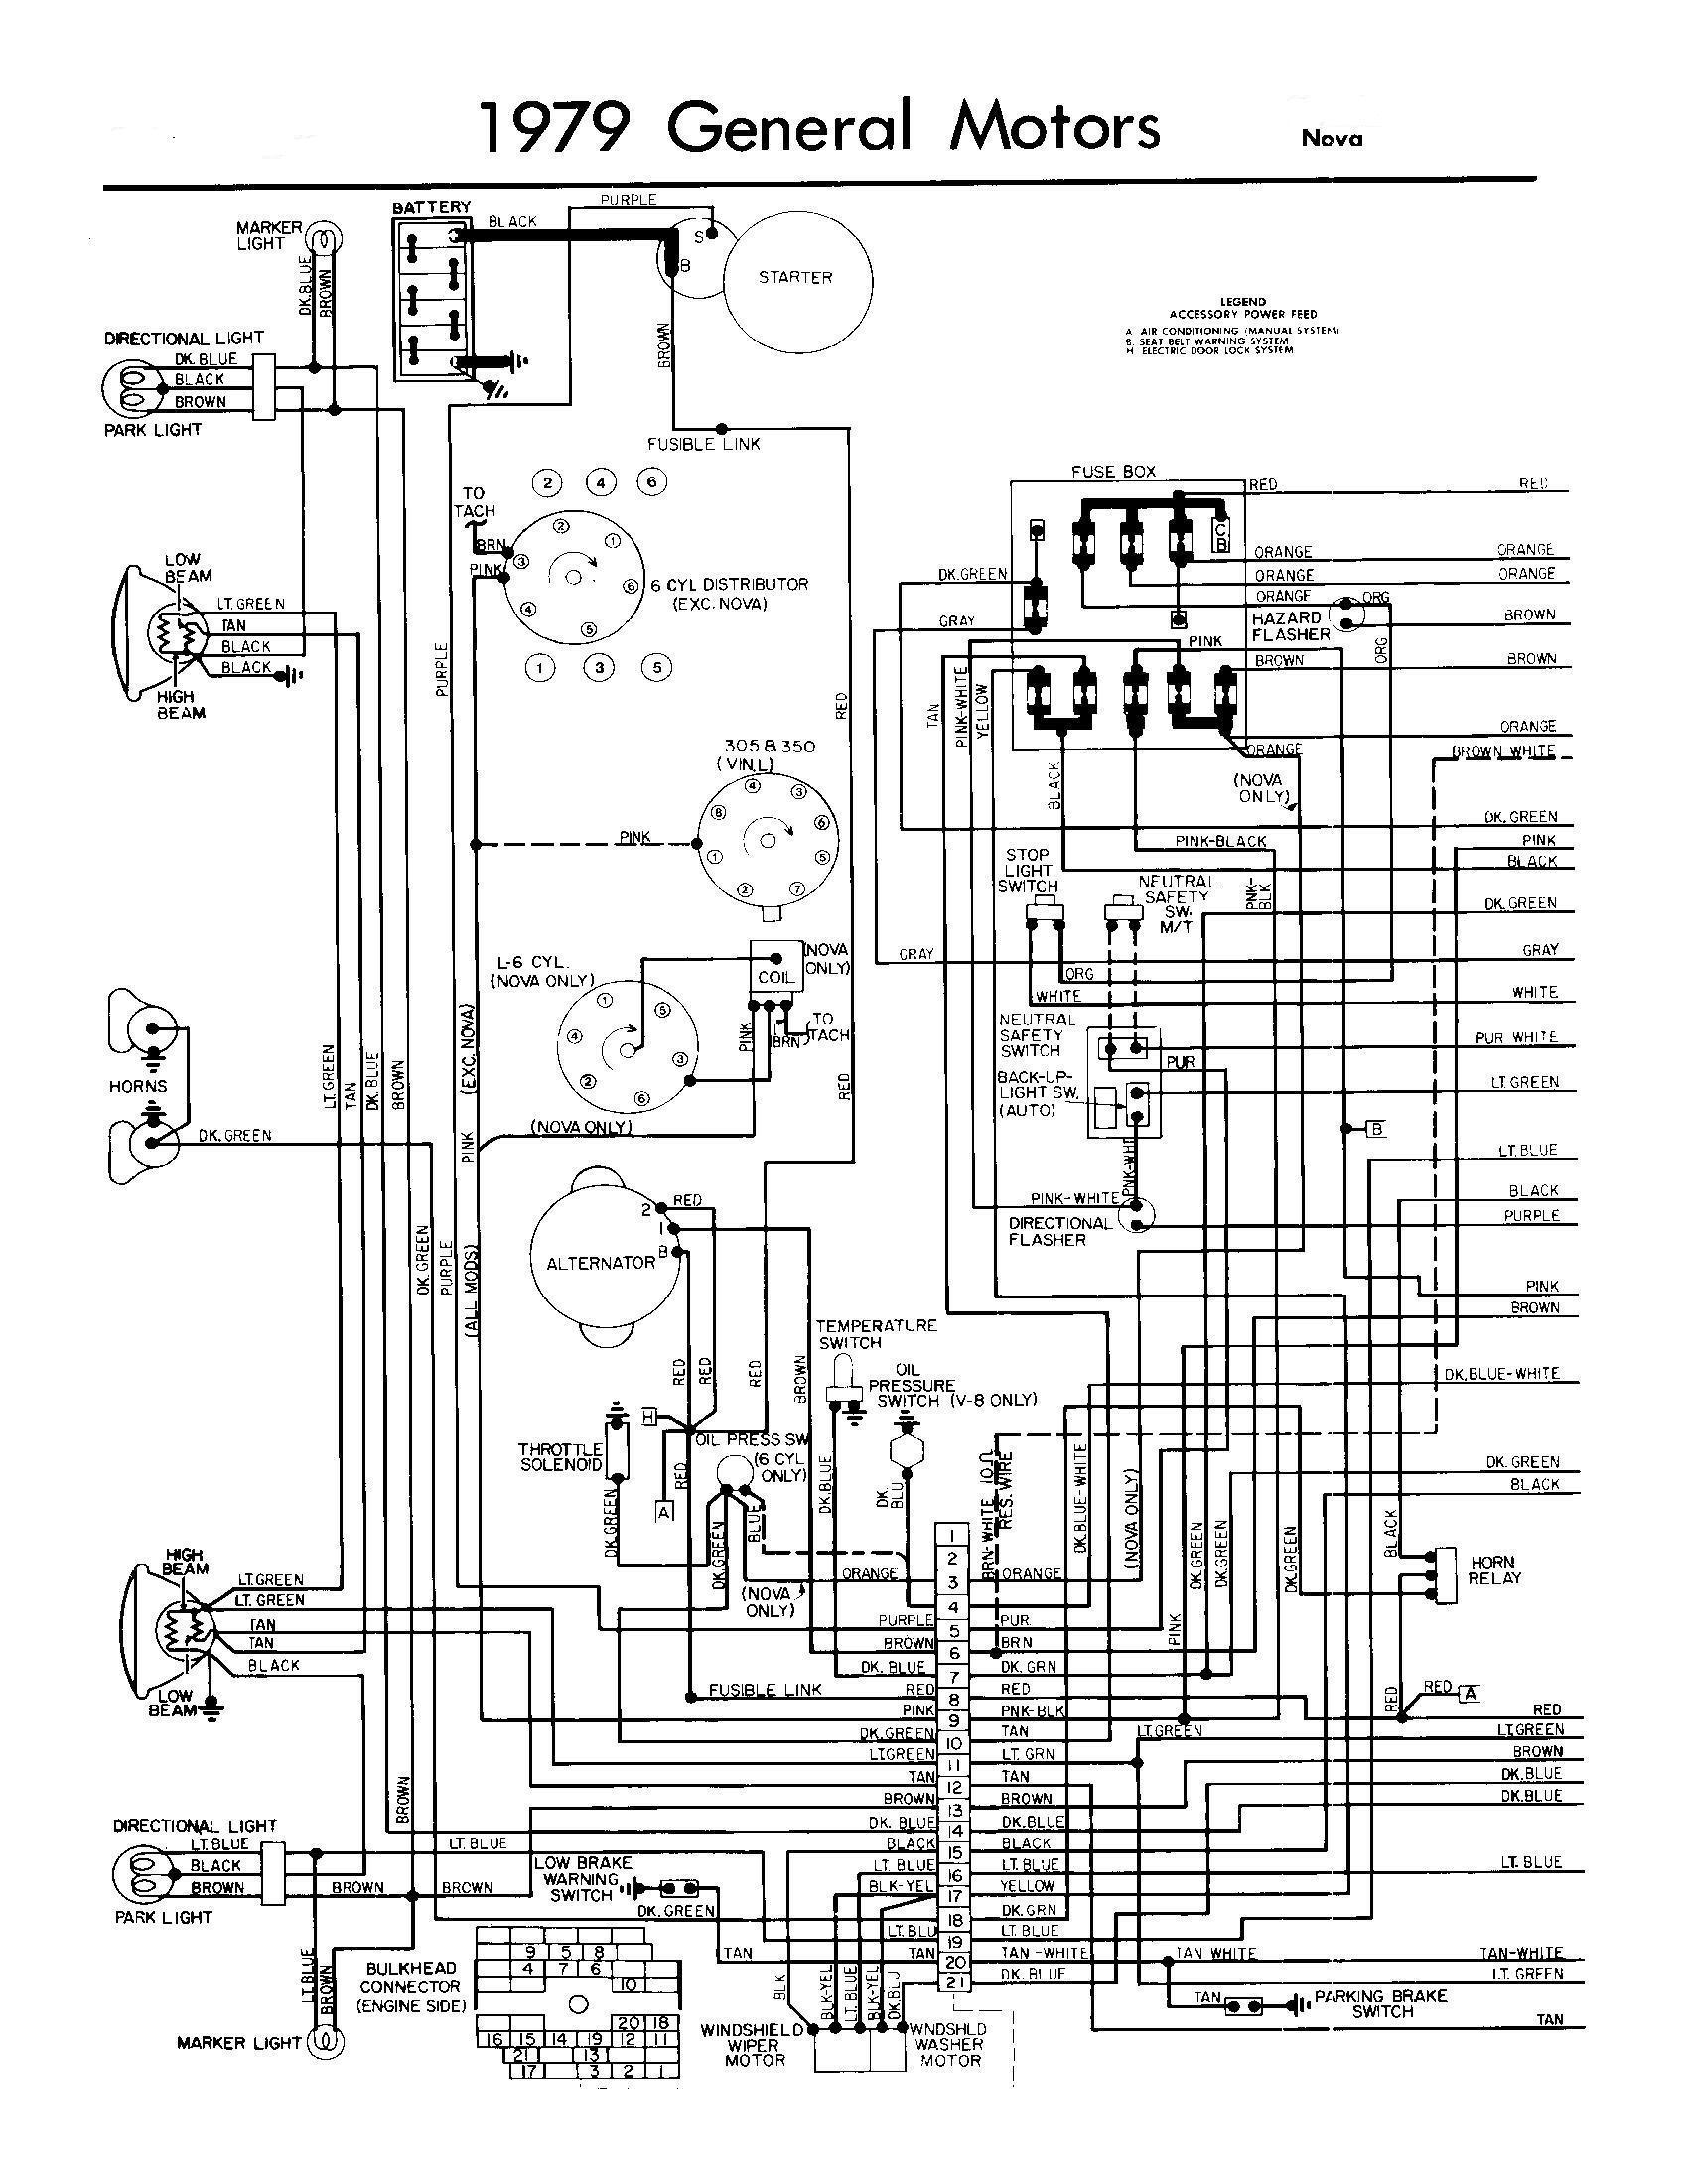 79 mustang wiring diagram on 79 images free download wiring diagrams 1989 Mustang Wiring Diagram 79 mustang wiring diagram 4 mustang wiring harness diagram 72 el camino wiring diagram 1965 1989 mustang wiring diagram